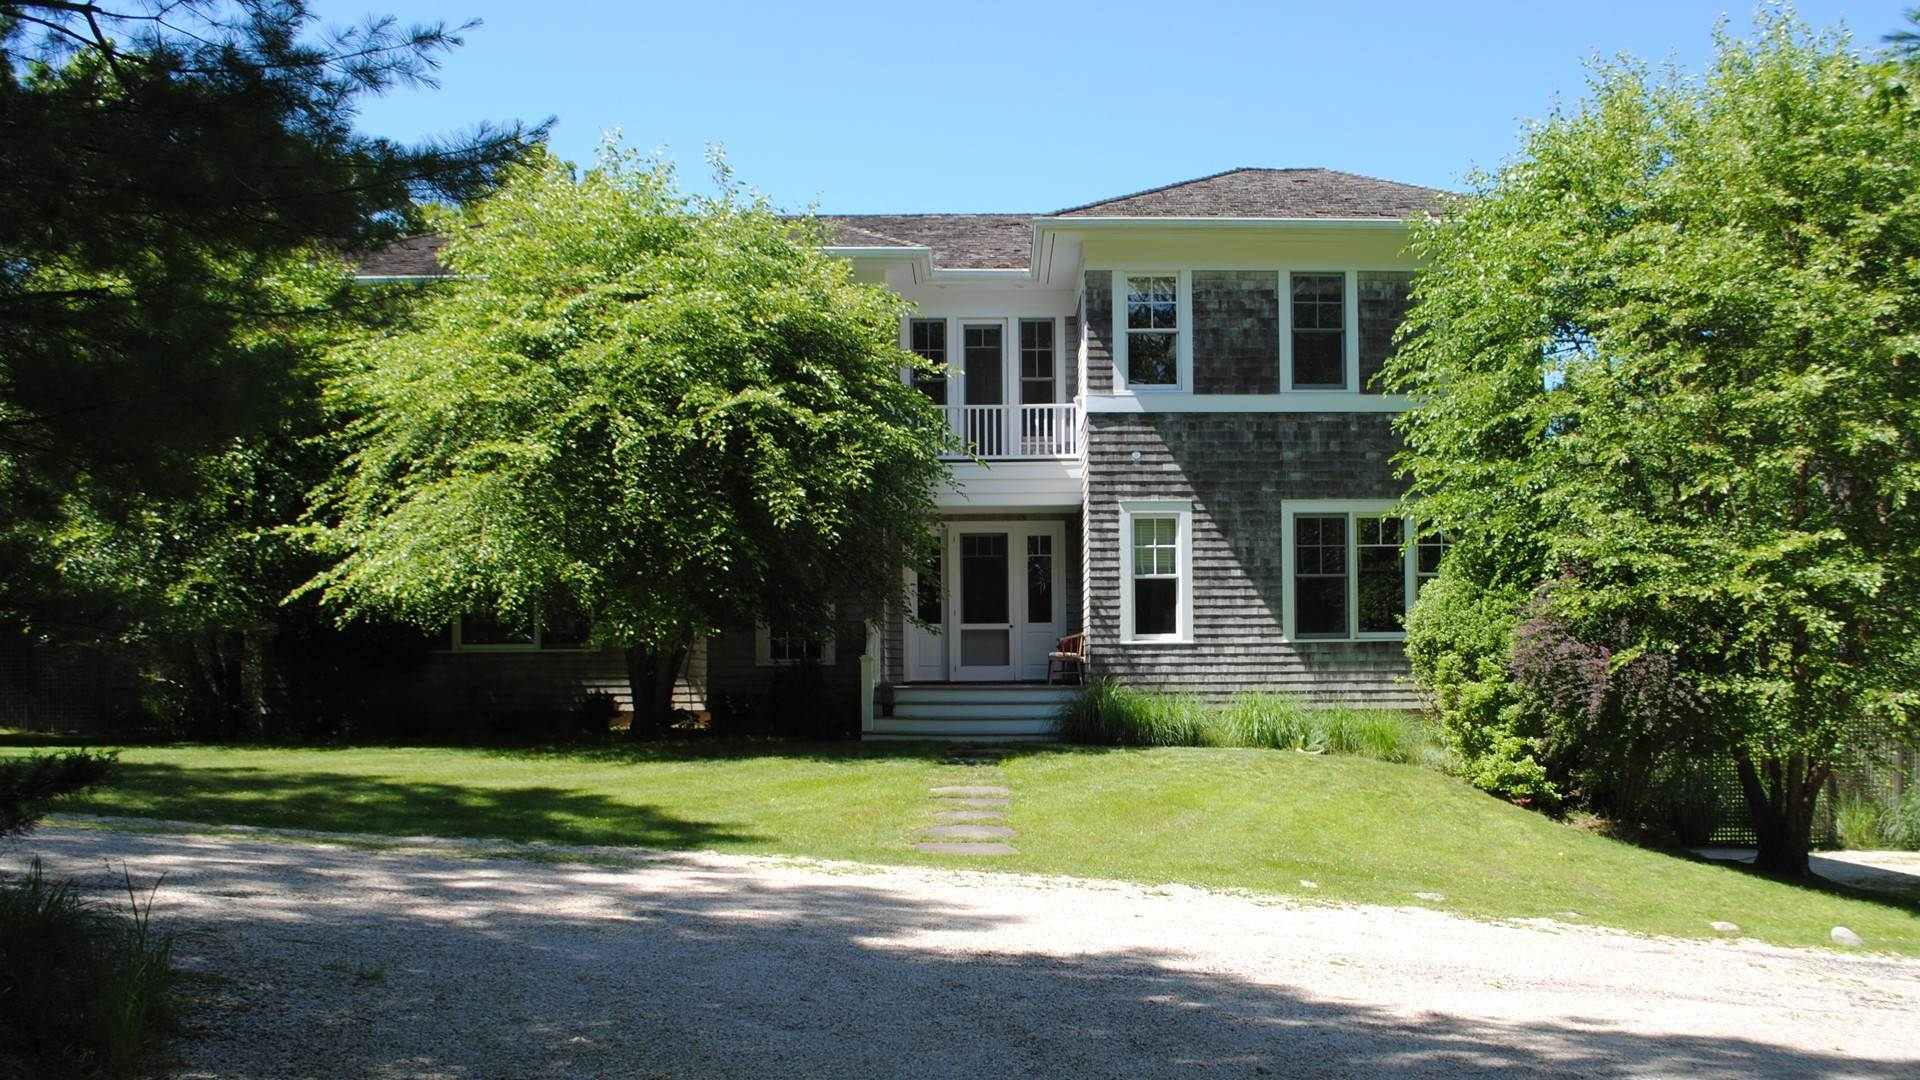 2. Single Family Home at East Hampton Bull Path 2021 East Hampton, NY 11937